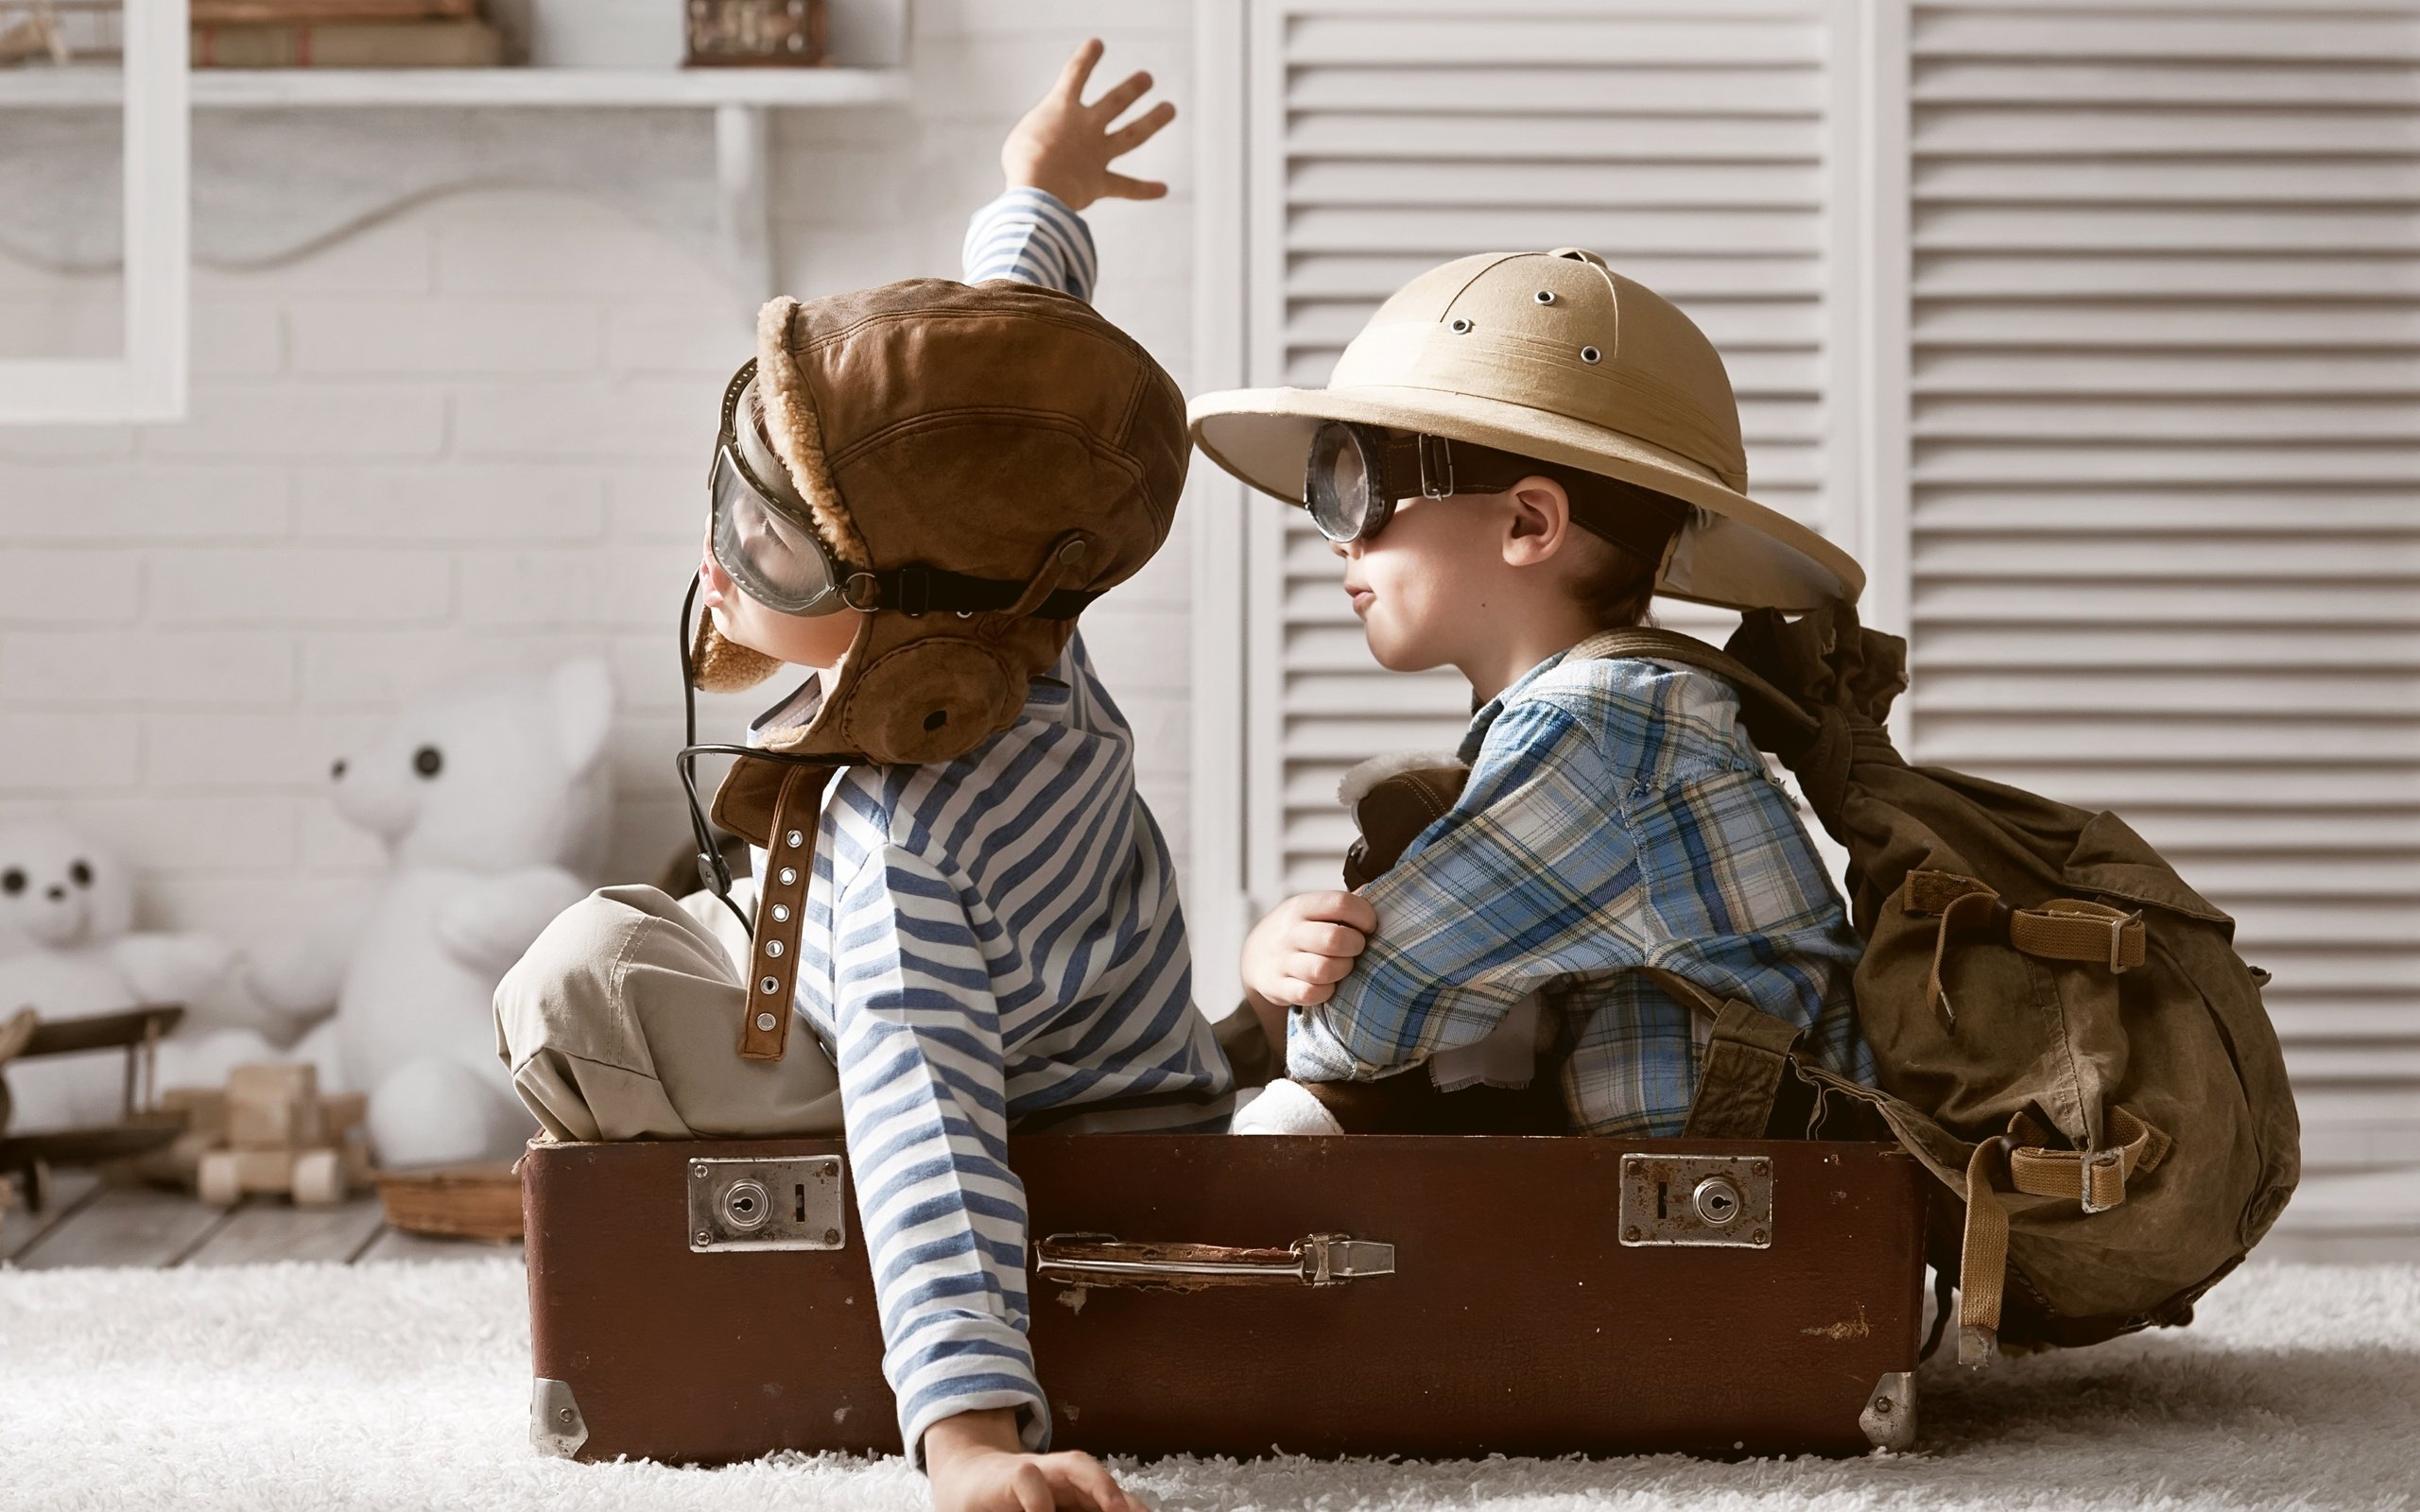 Boys Playing Children Pilots Suitcase Mood Fun Aircraft